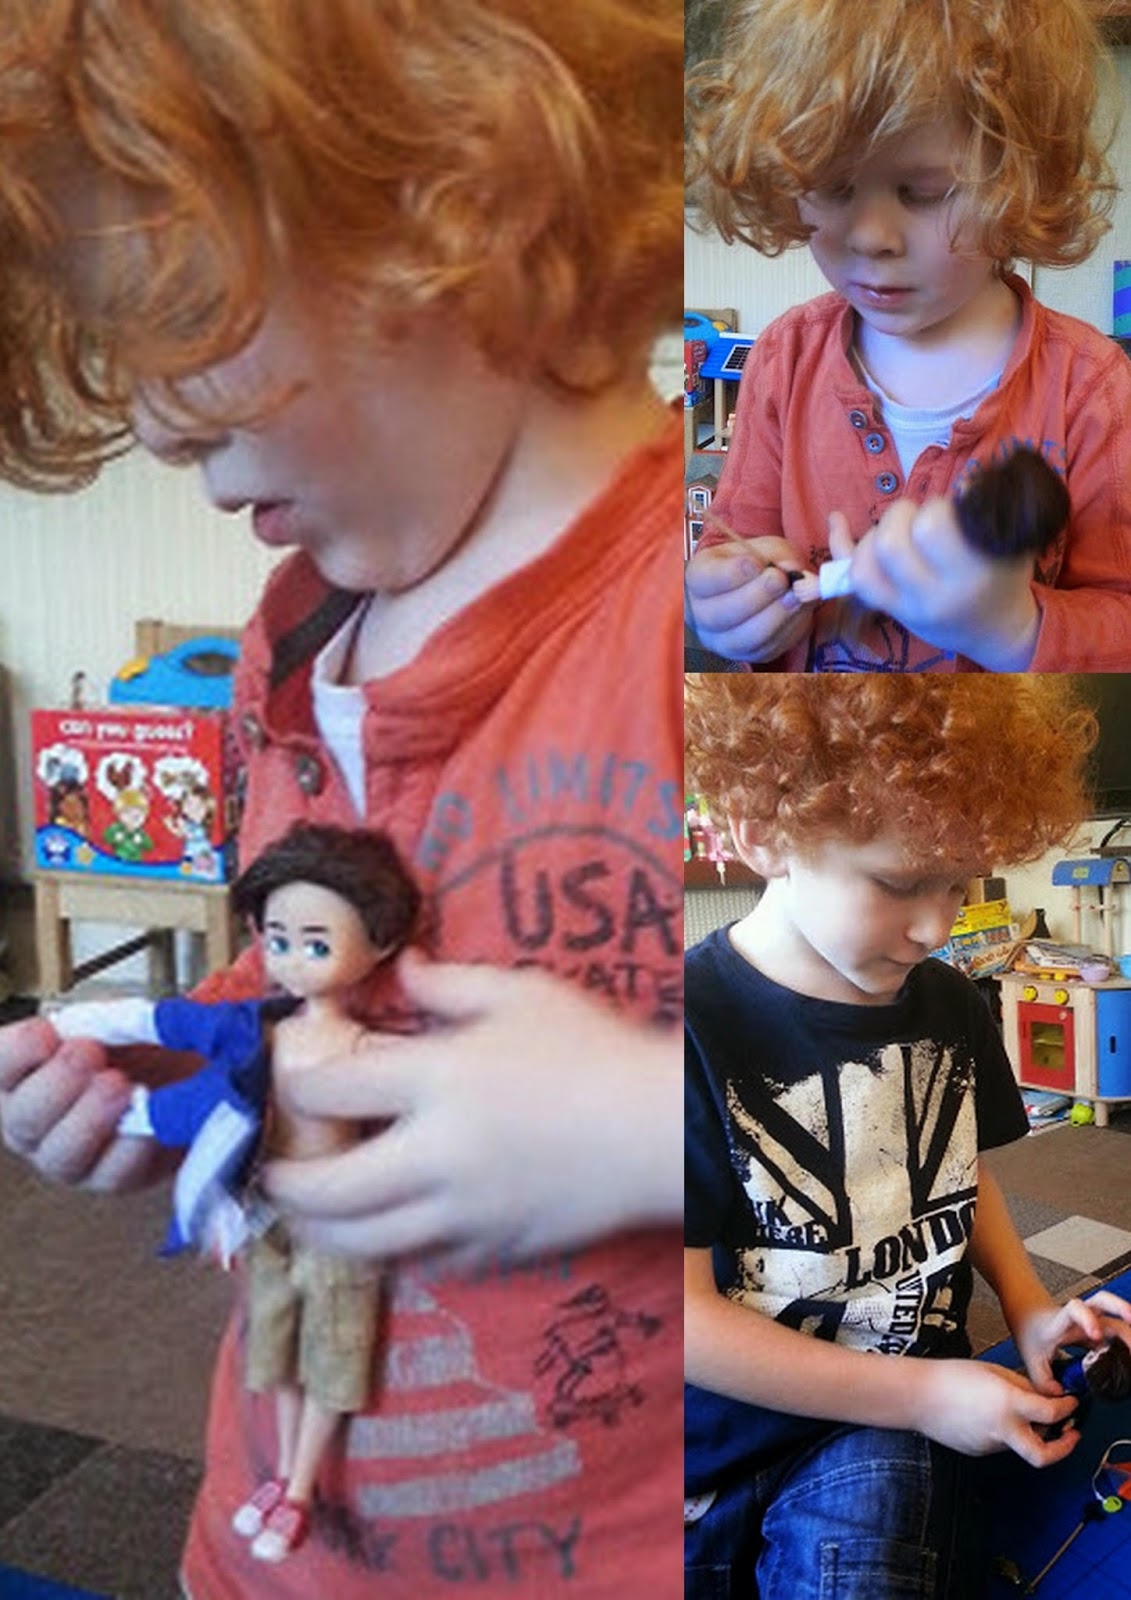 4 and 6 year old boys playing with dolls